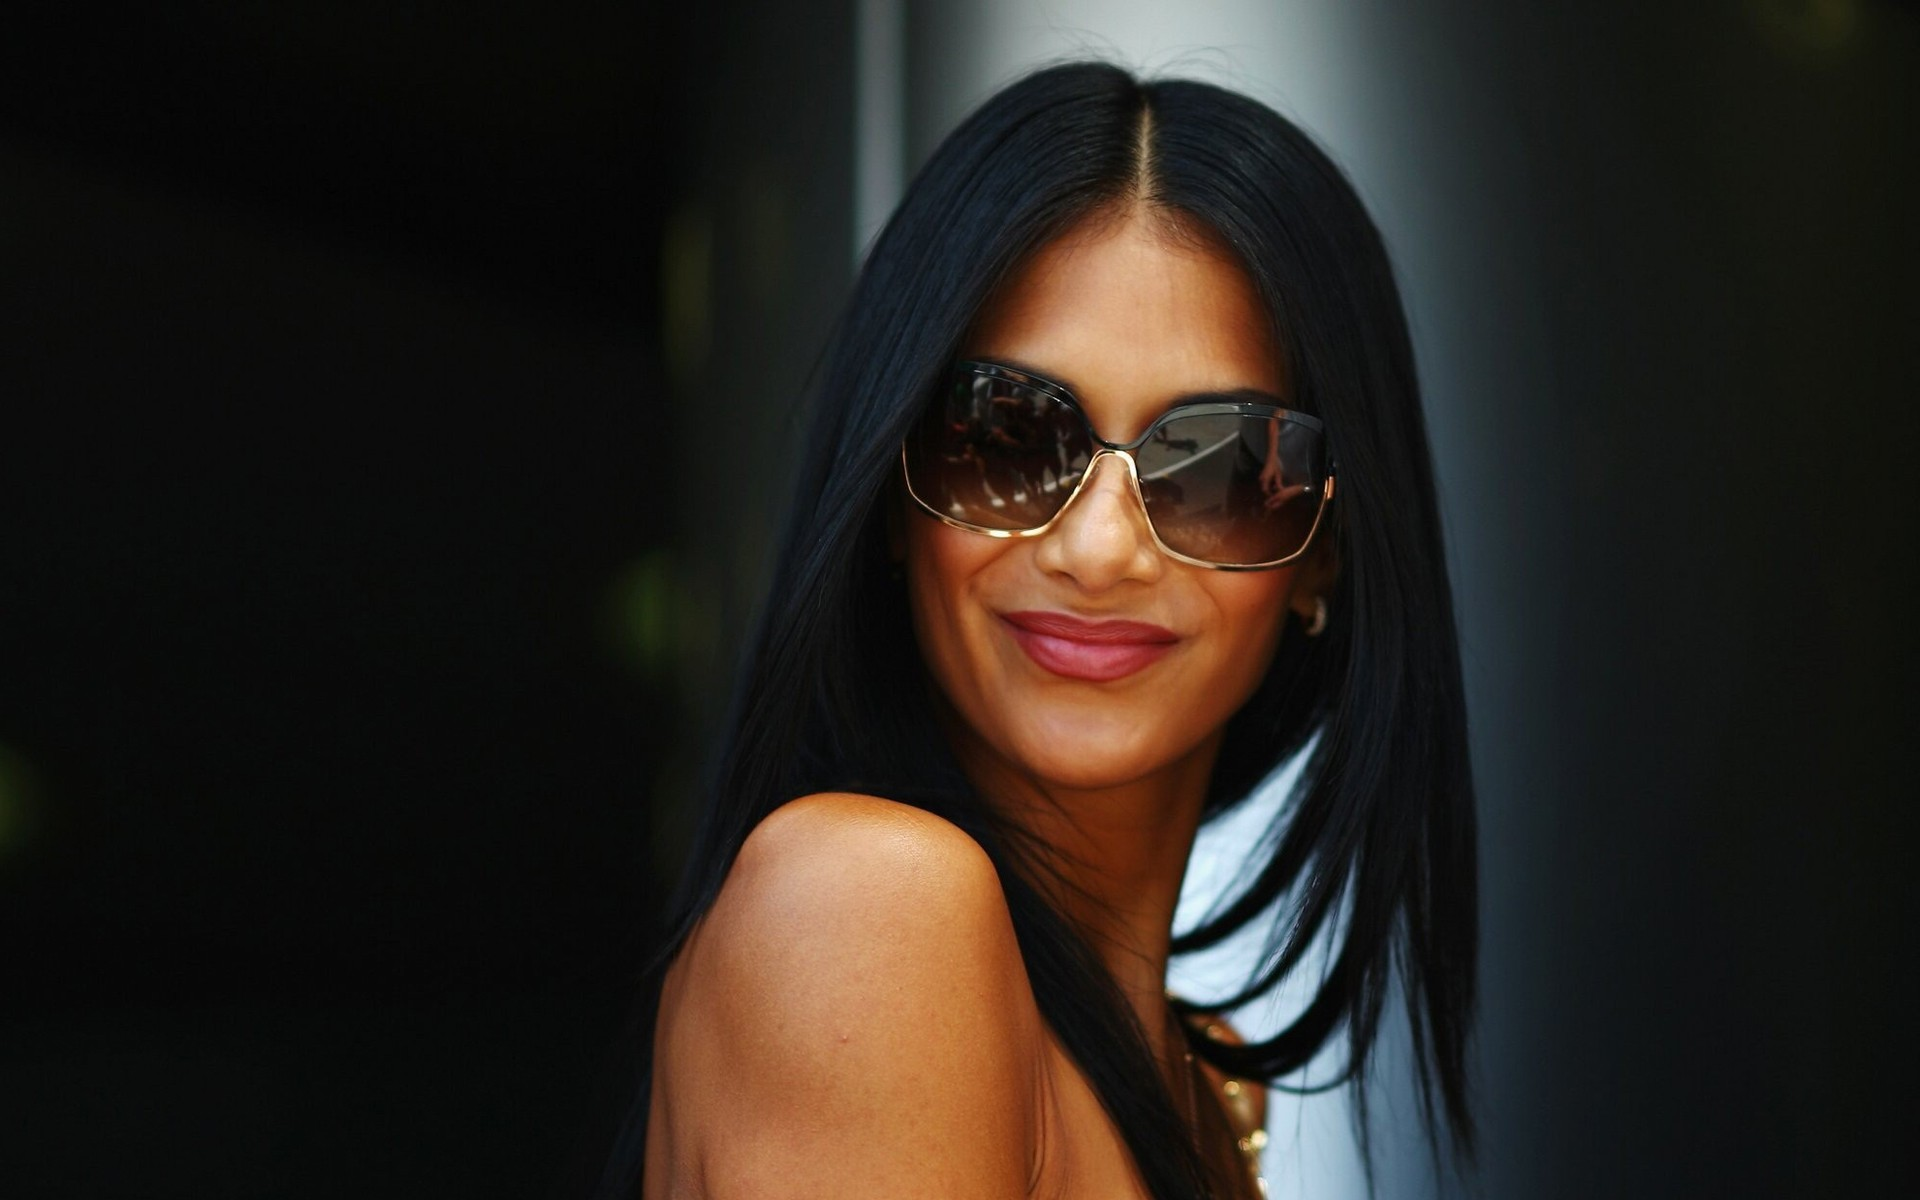 nicole scherzinger free hd exclusive images download